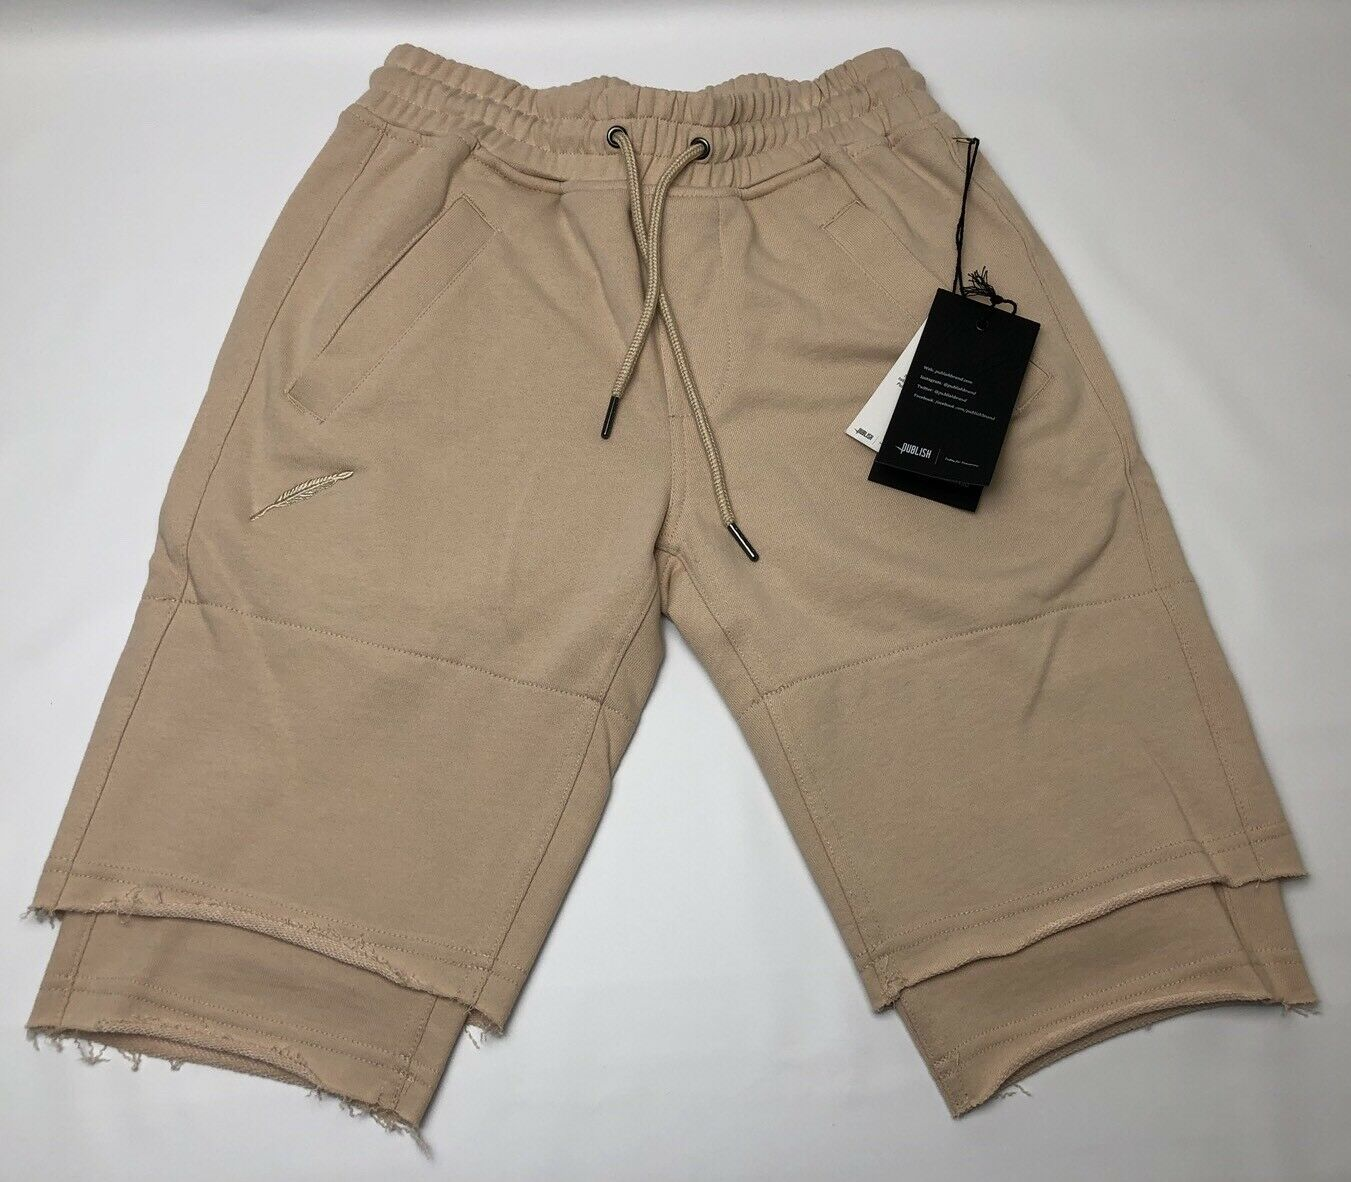 Publish Jett Shorts P1701049 Sand Brand New WithTags